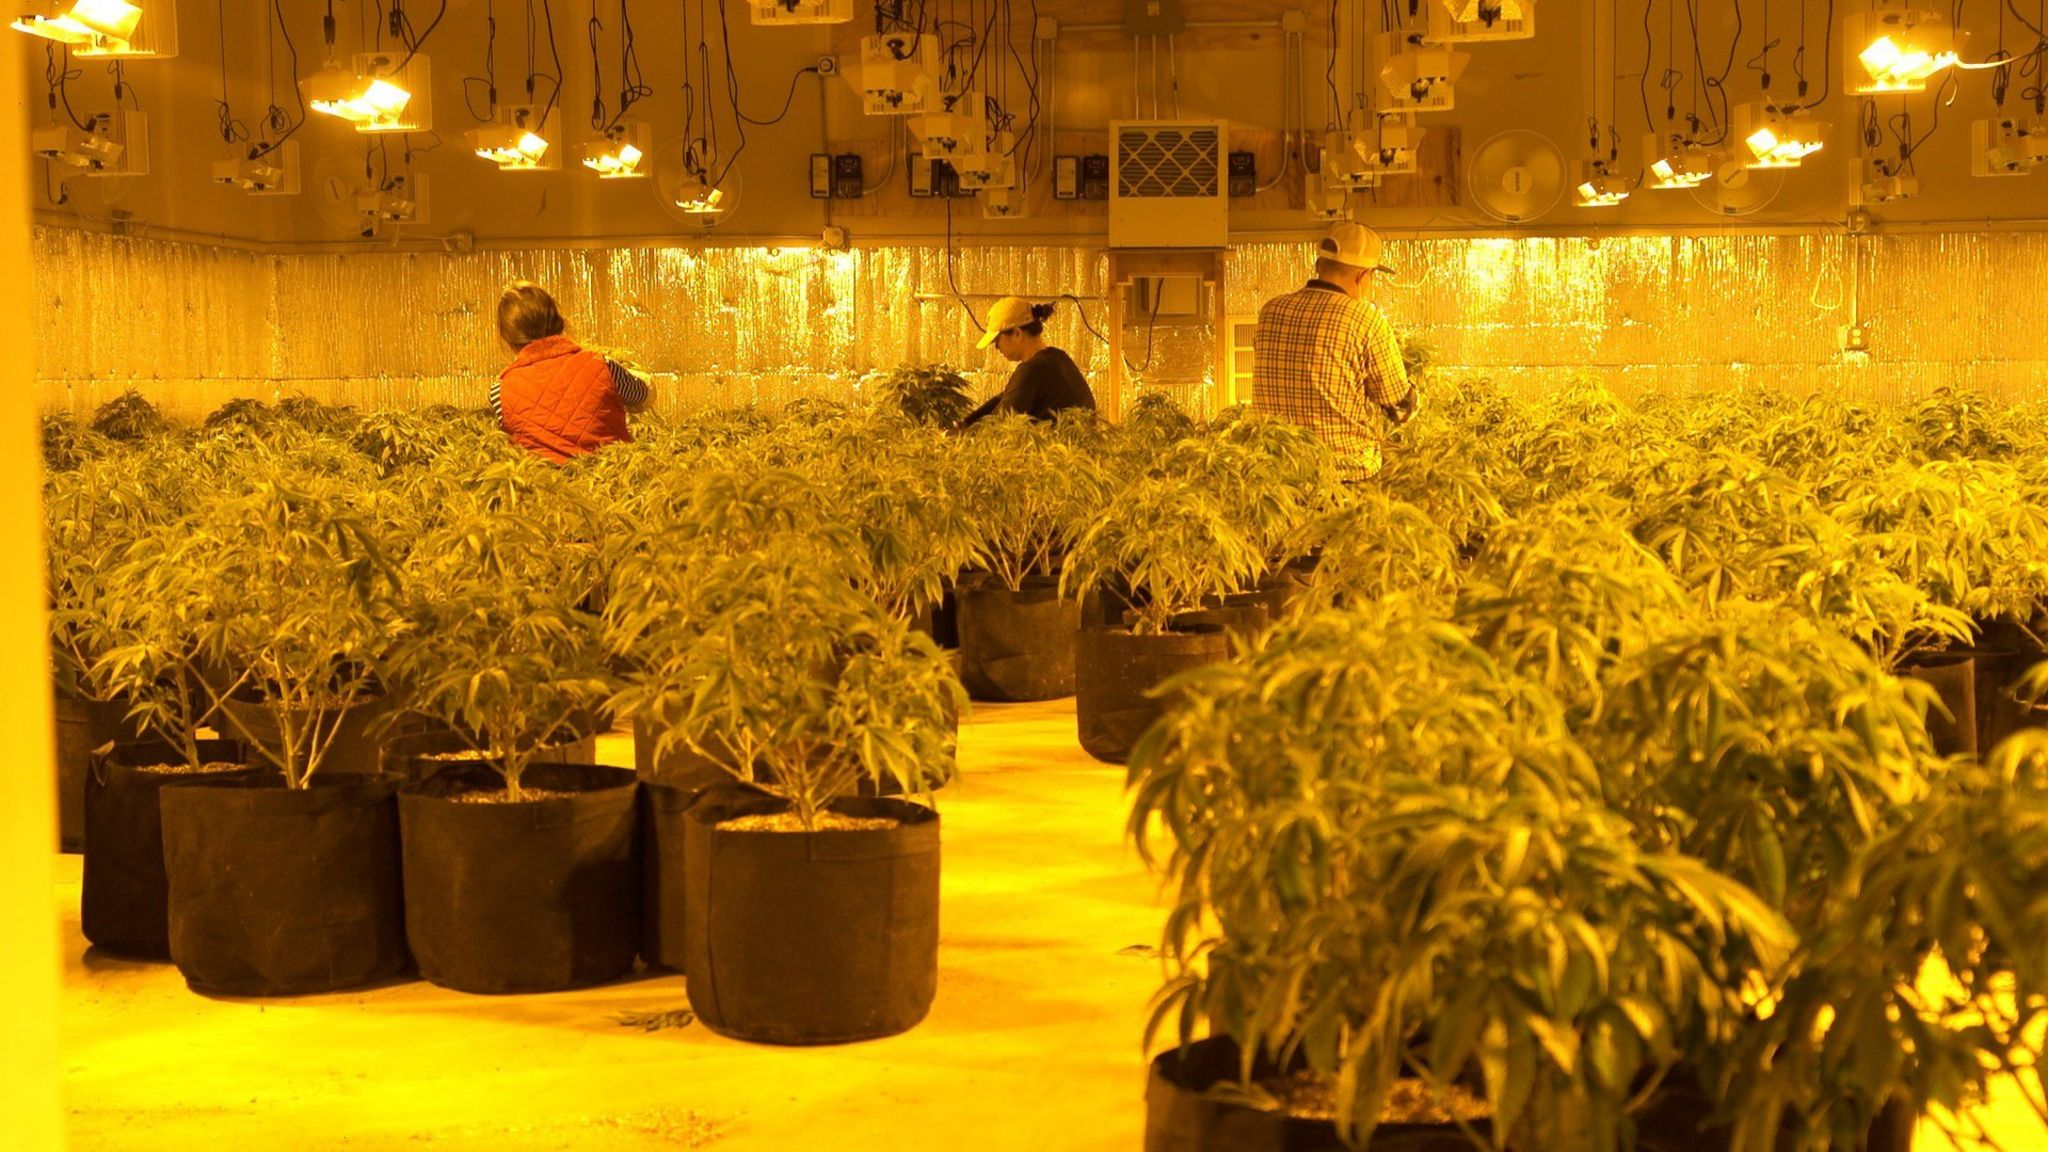 Chinese workers on a cannabis farm